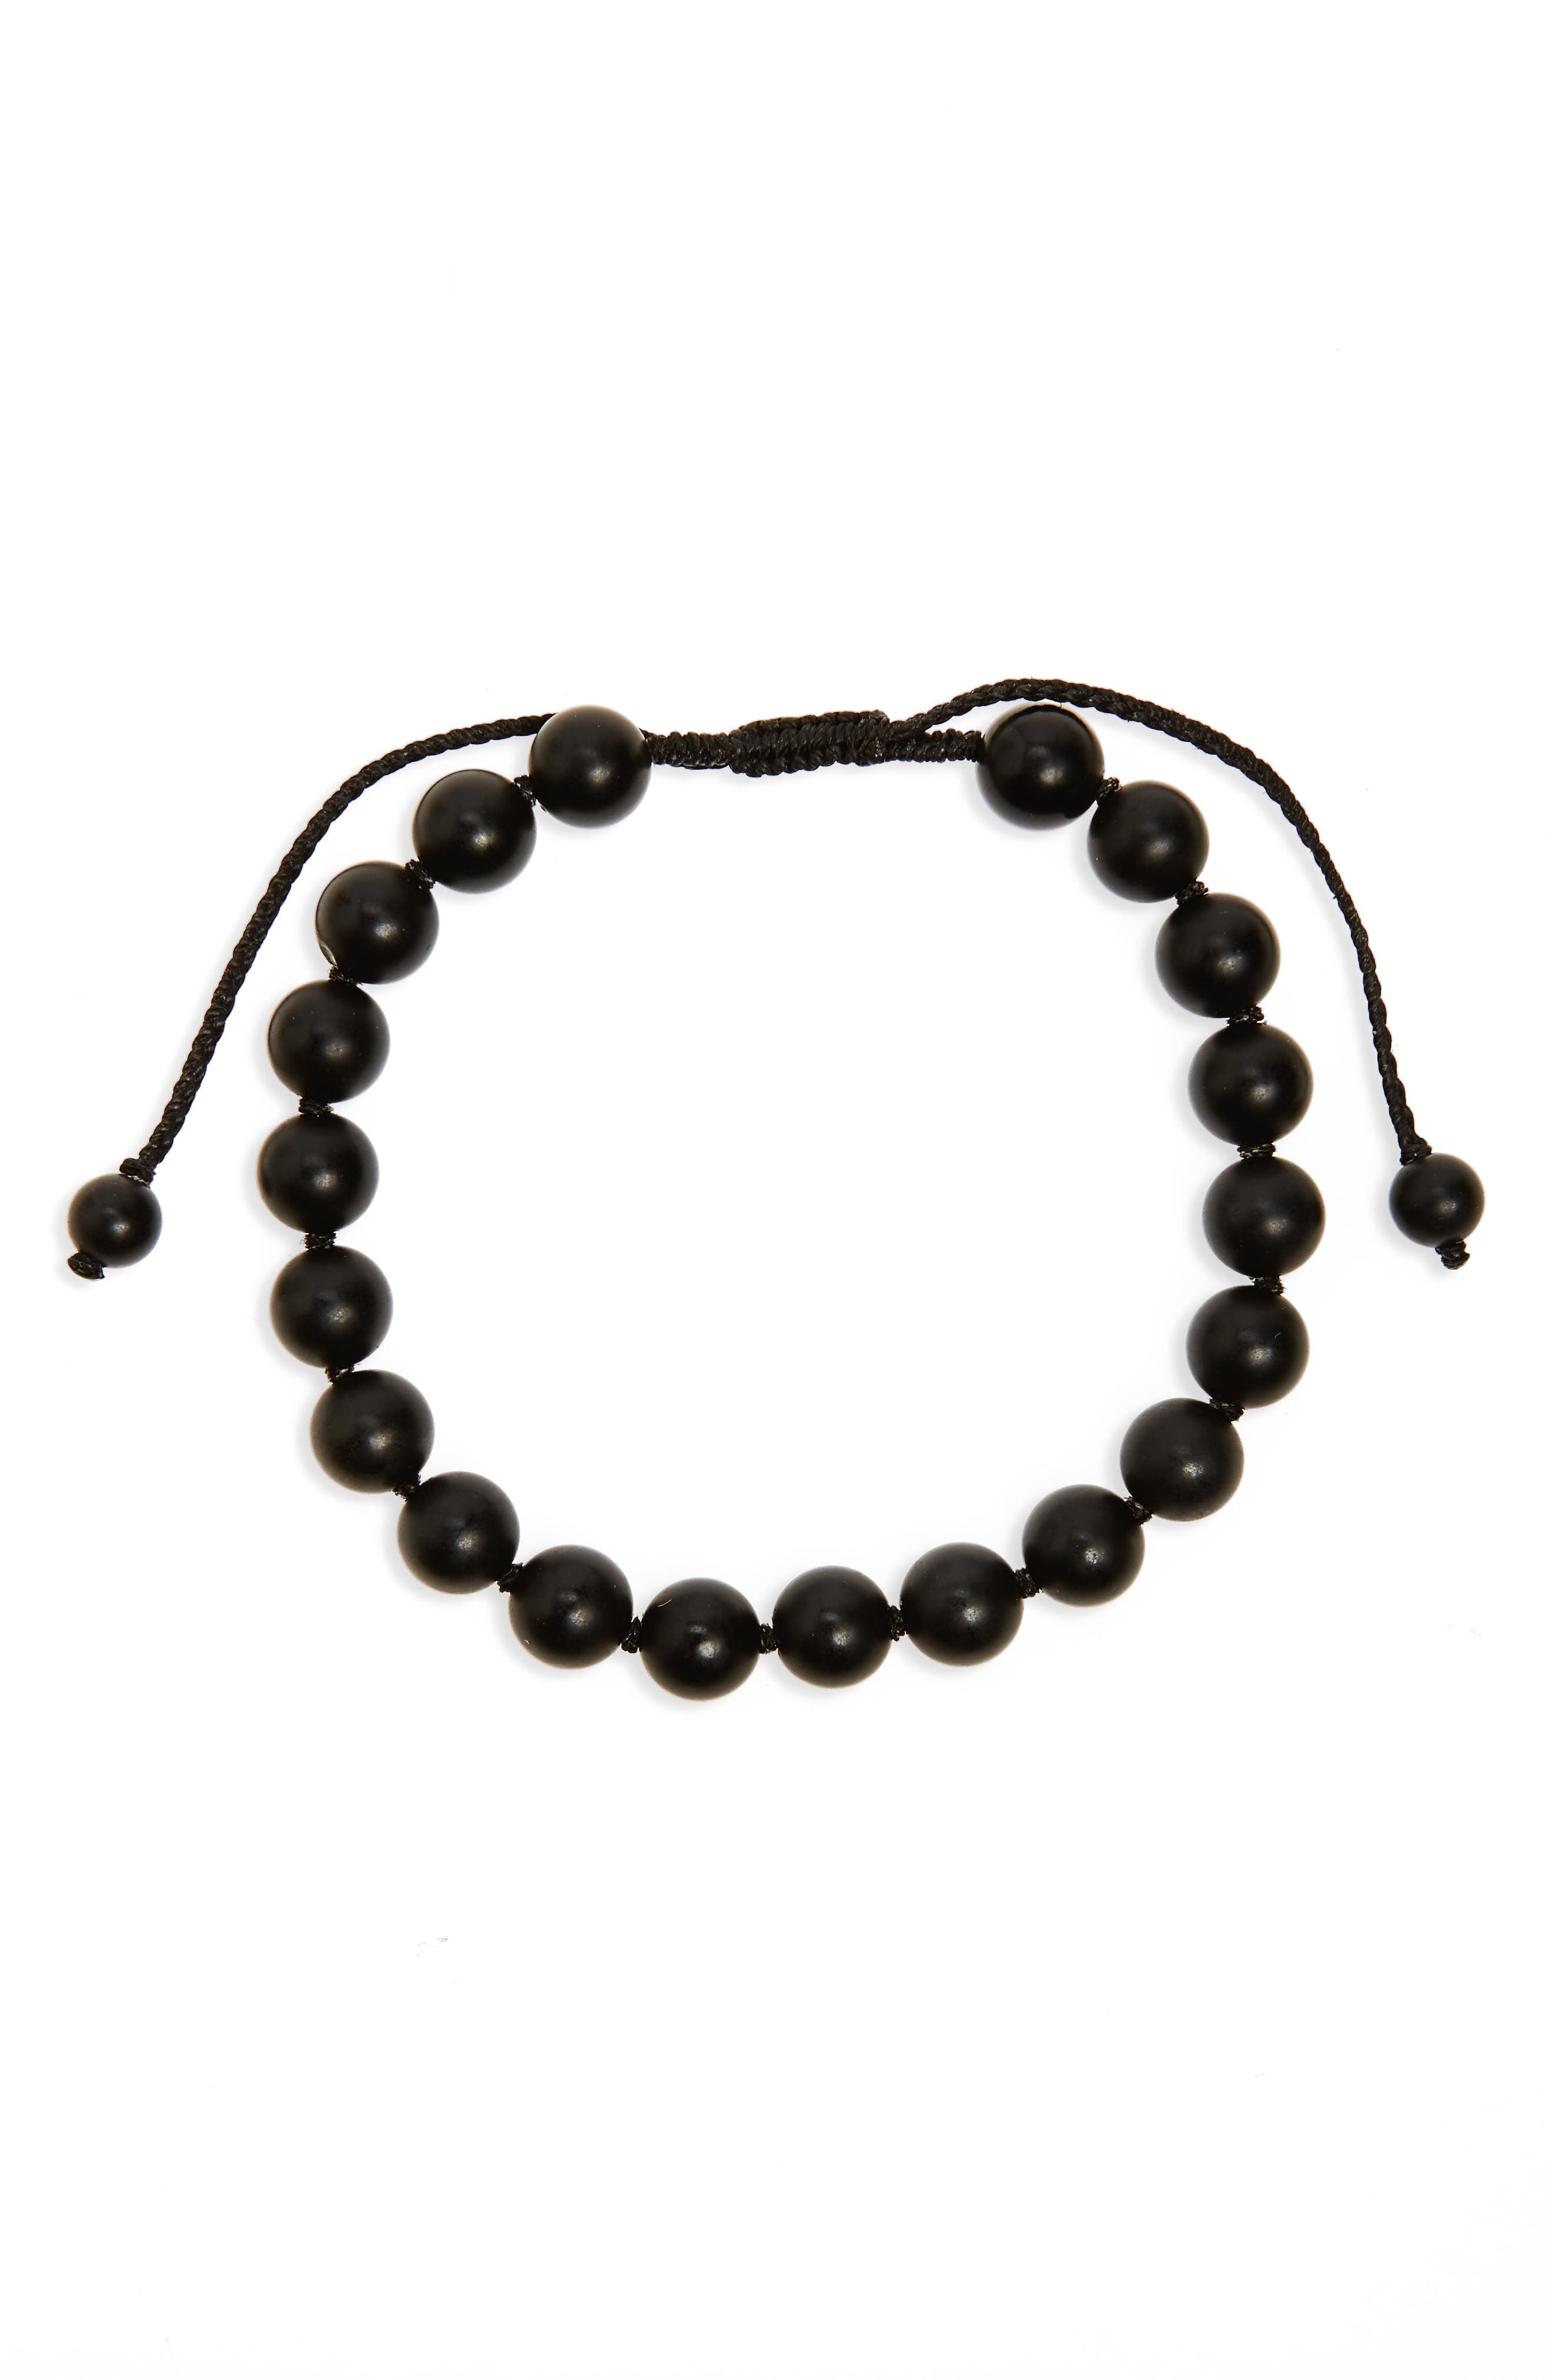 Onyx Bead Bracelet,                         Main,                         color, Black